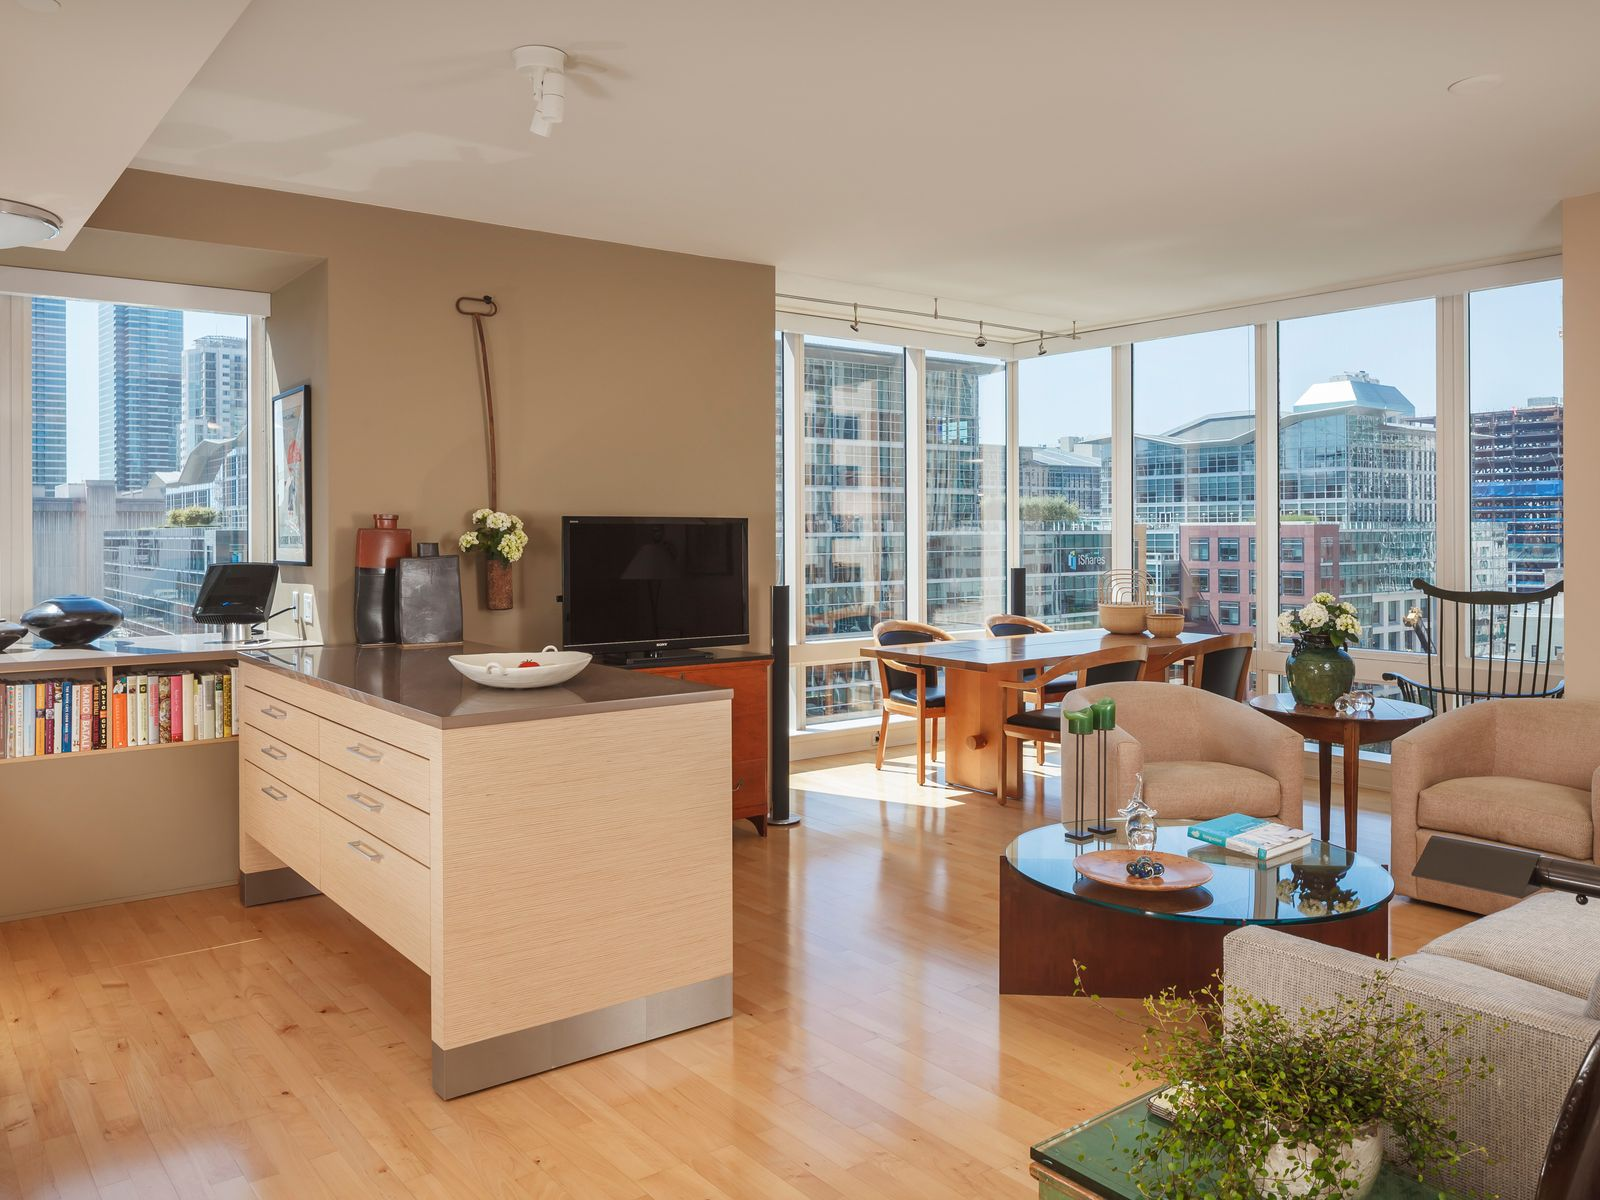 Millennium Tower Southwest Corner Condo, San Francisco CA Condominium - San Francisco Real Estate